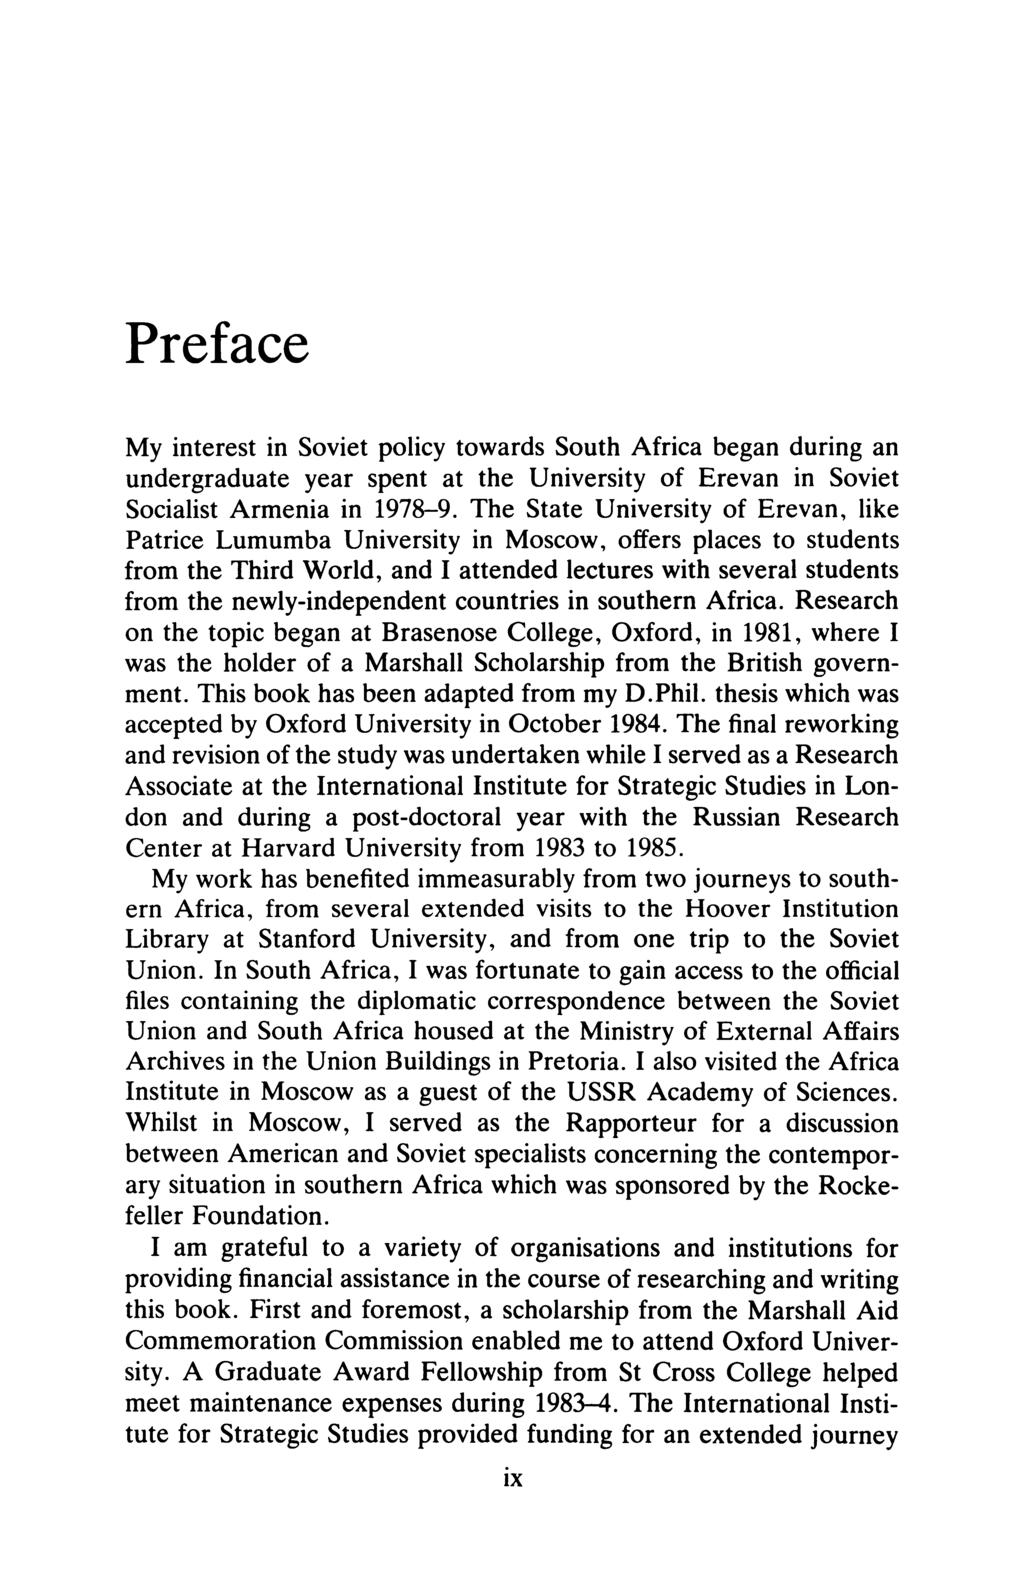 Preface My interest in Soviet policy towards South Africa began during an undergraduate year spent at the University of Erevan in Soviet Socialist Armenia in 1978-9.